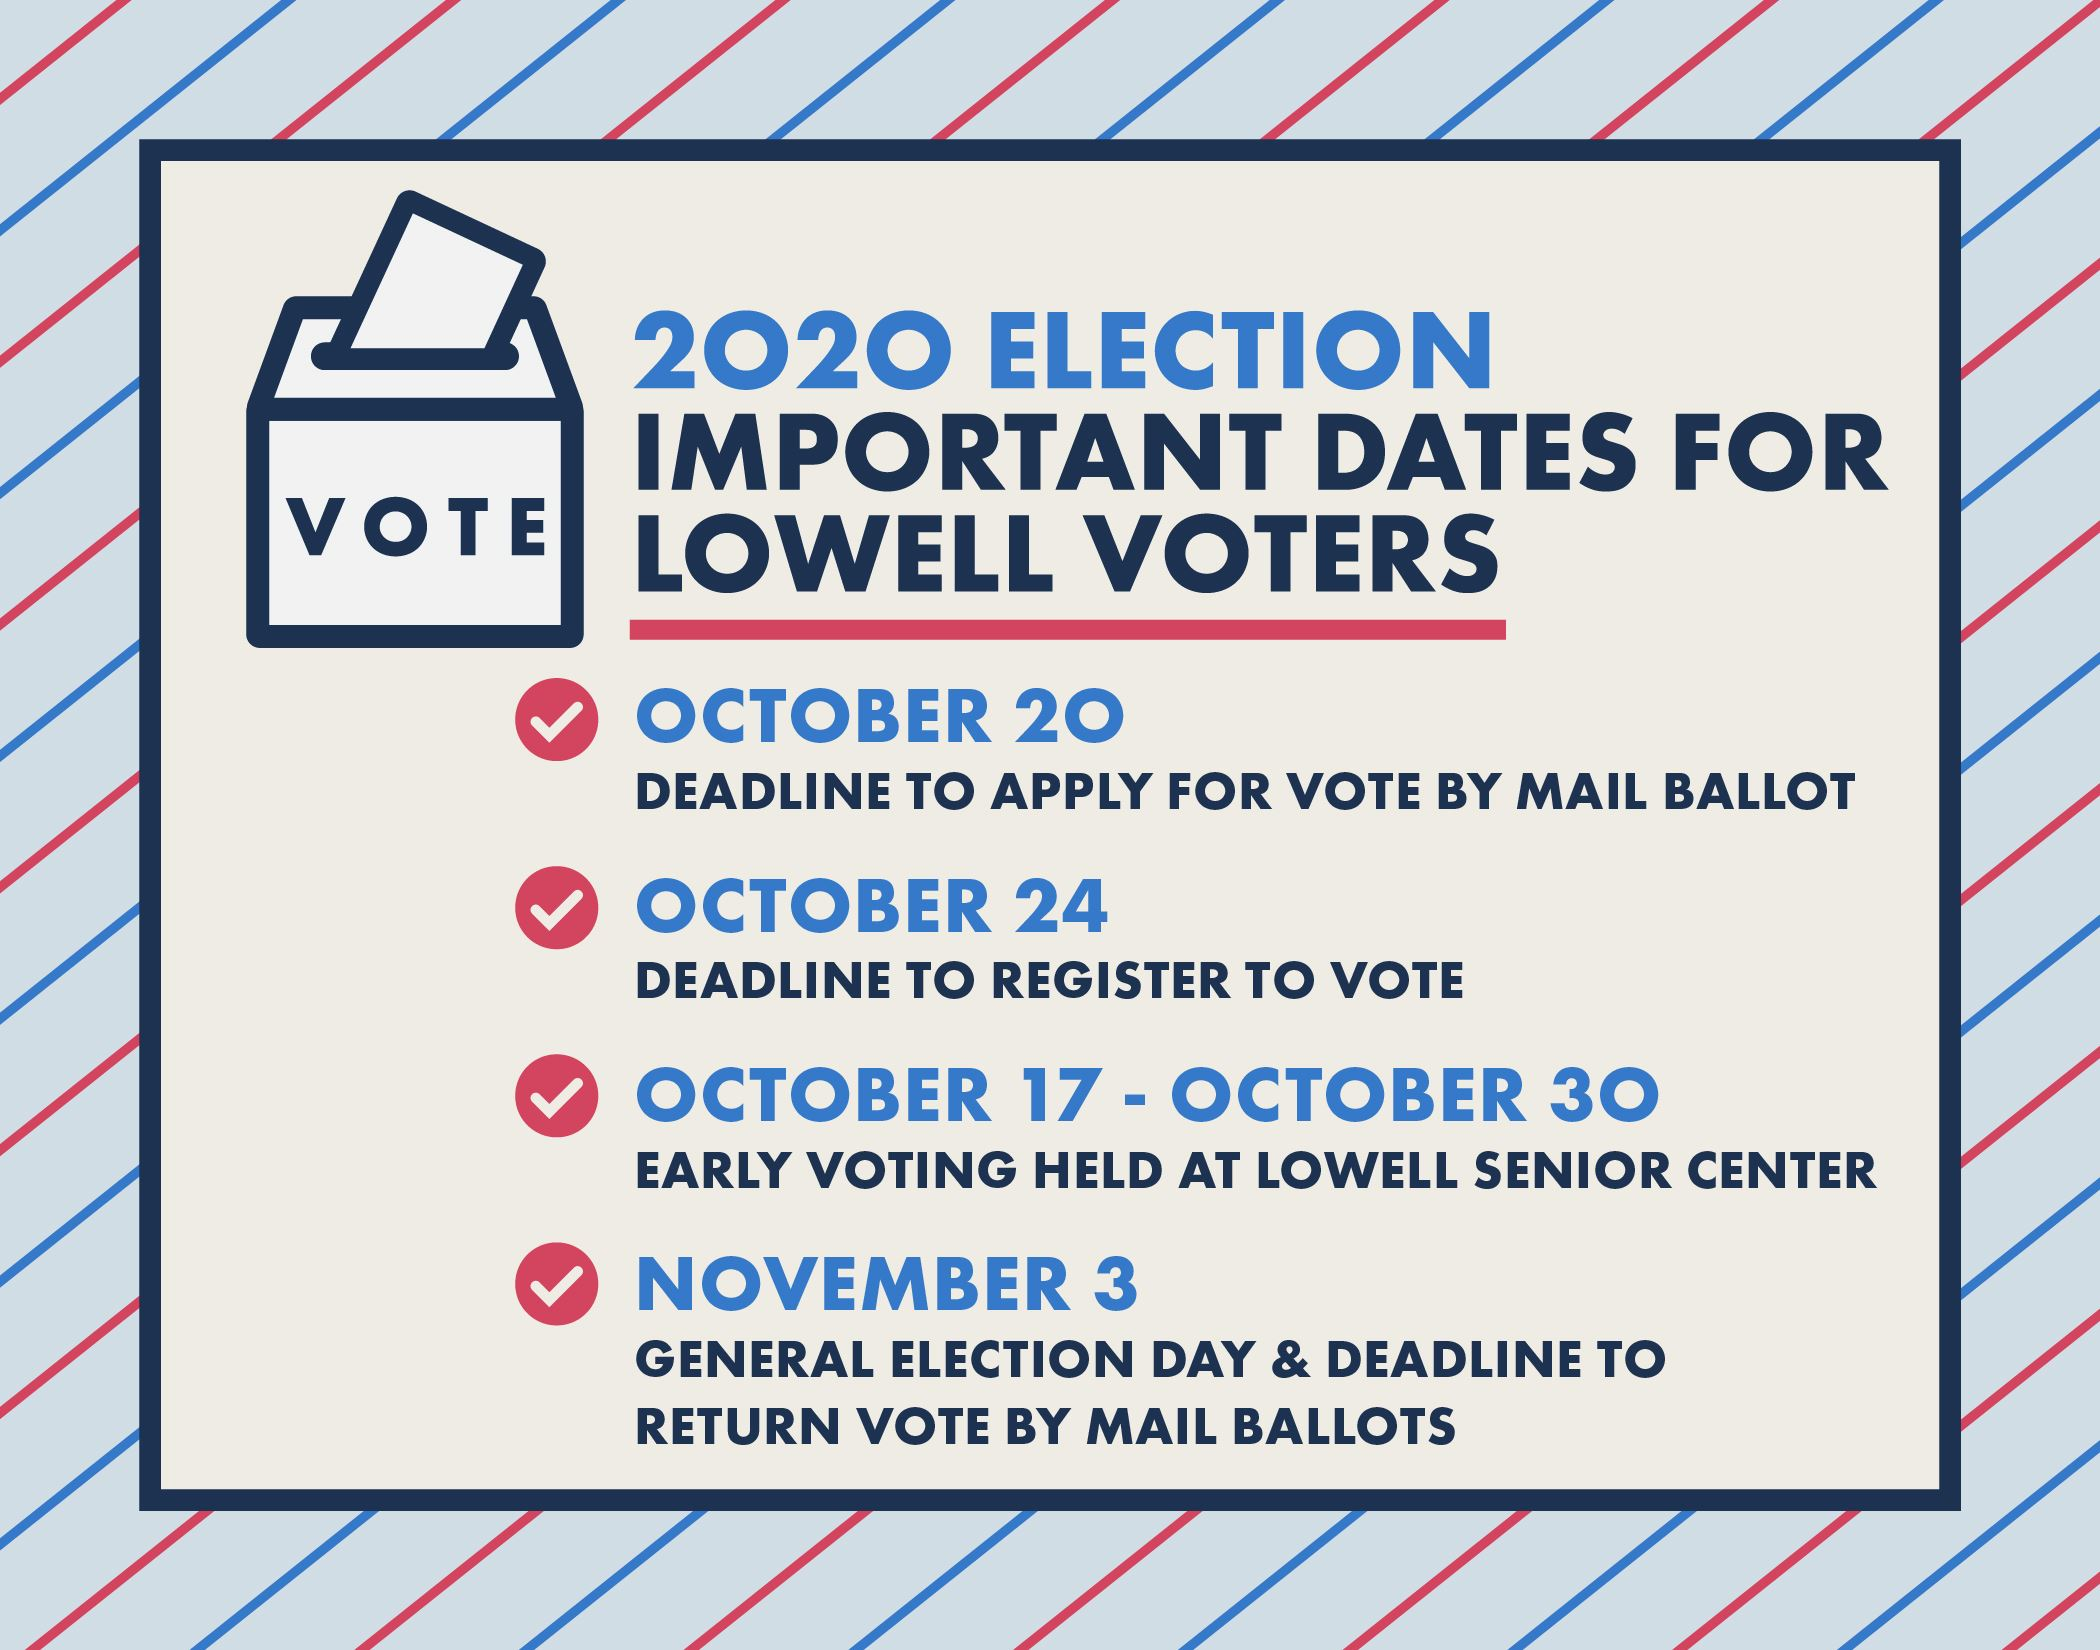 Election Important Dates 2020